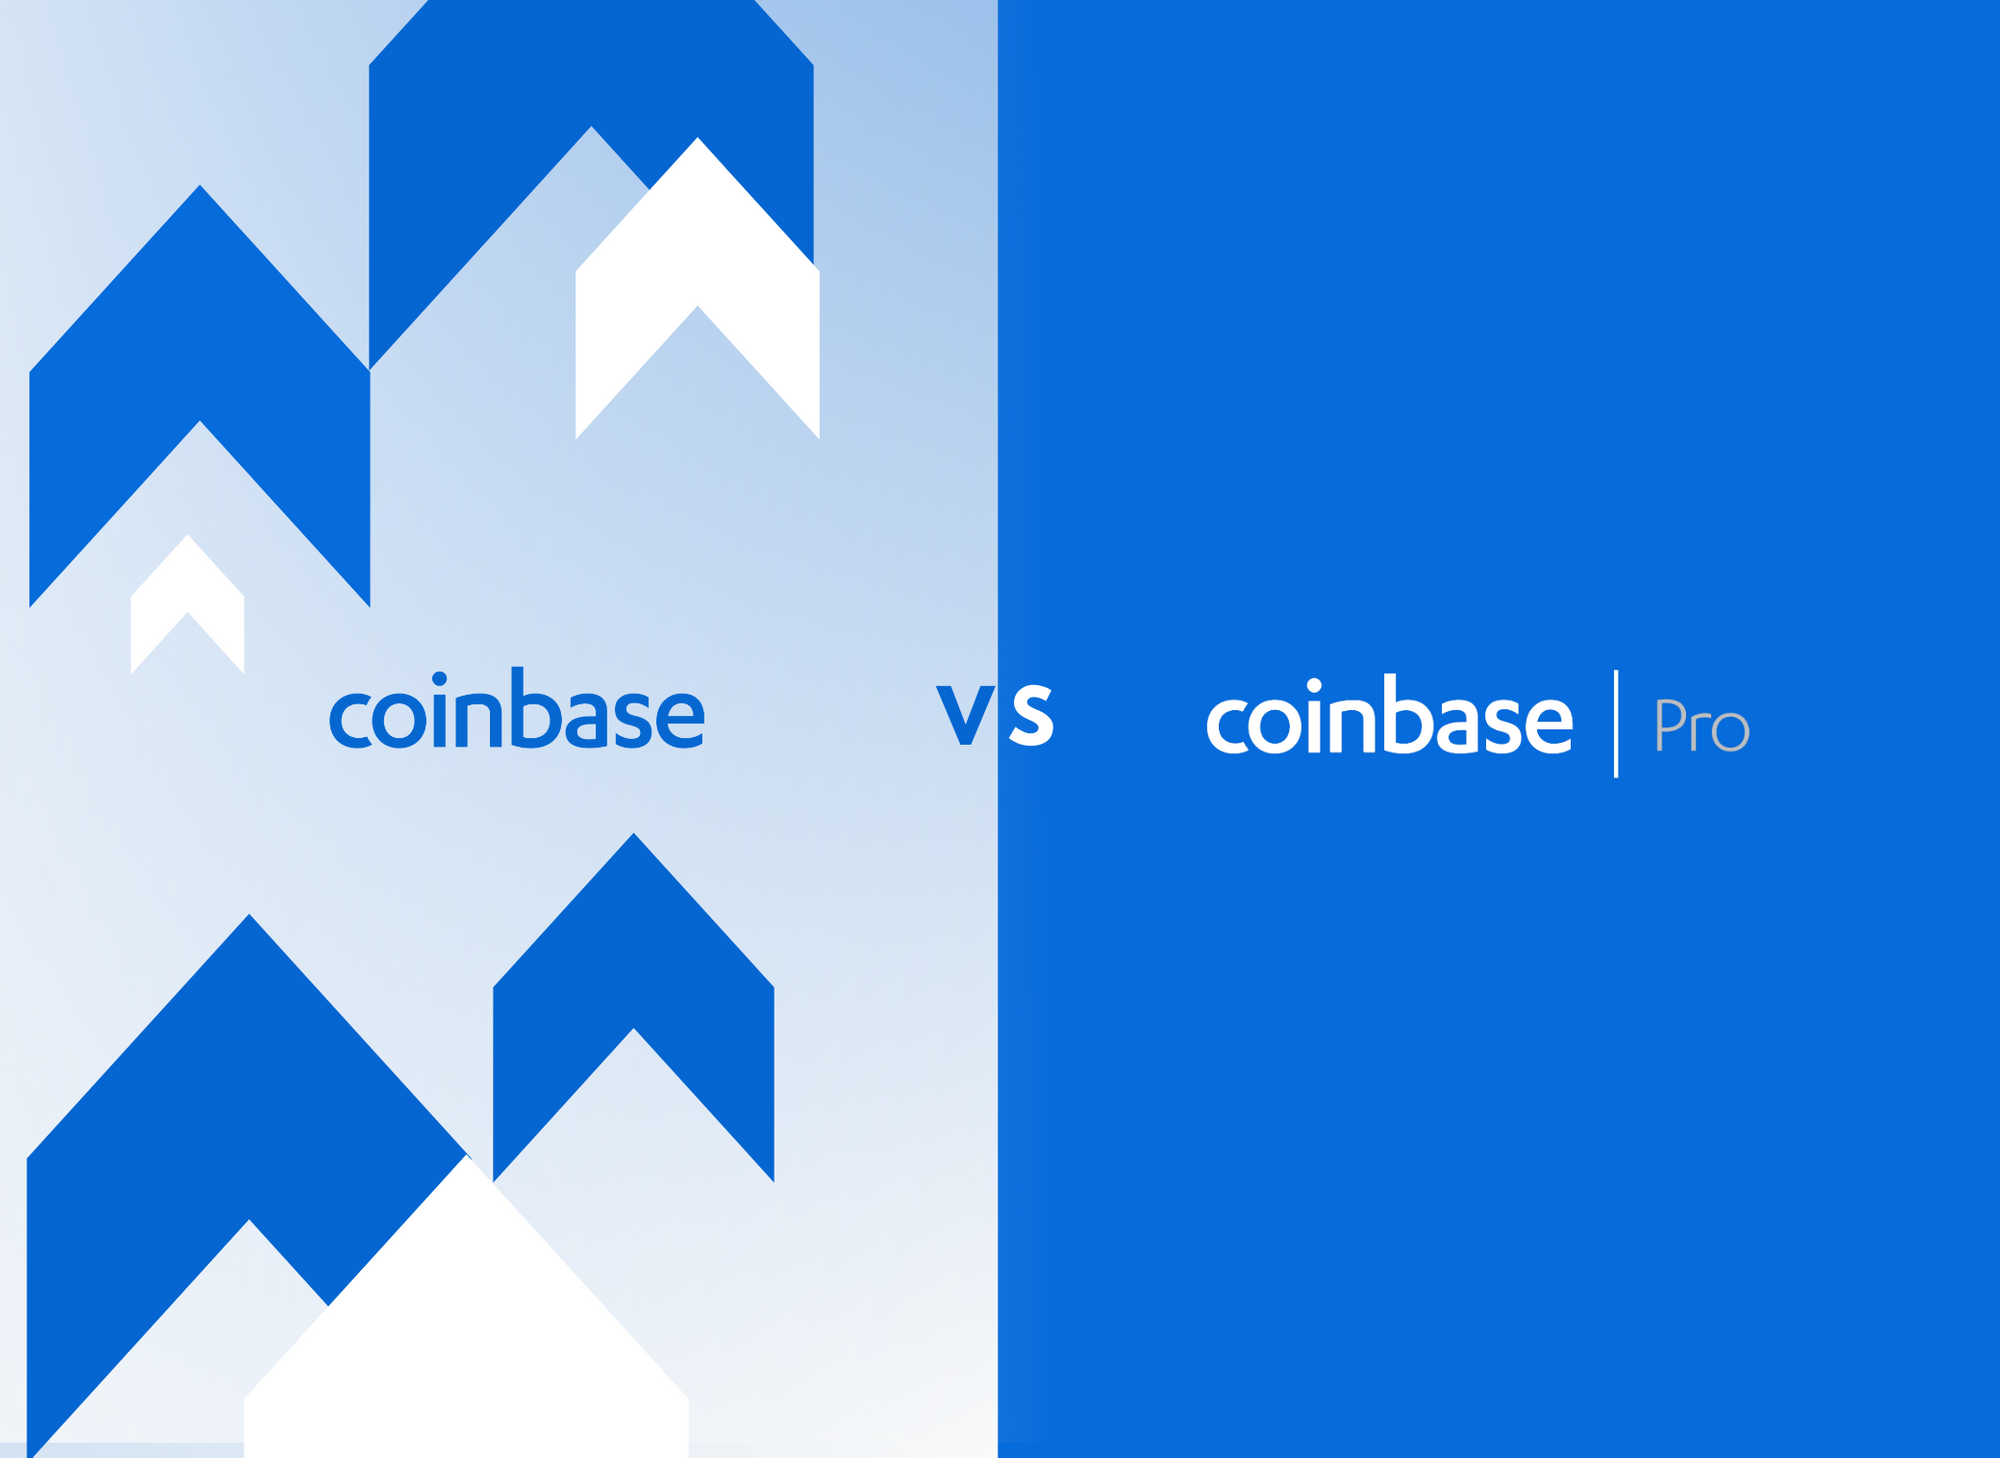 Coinbase vs. Coinbase Pro: What is Better for Businesses?